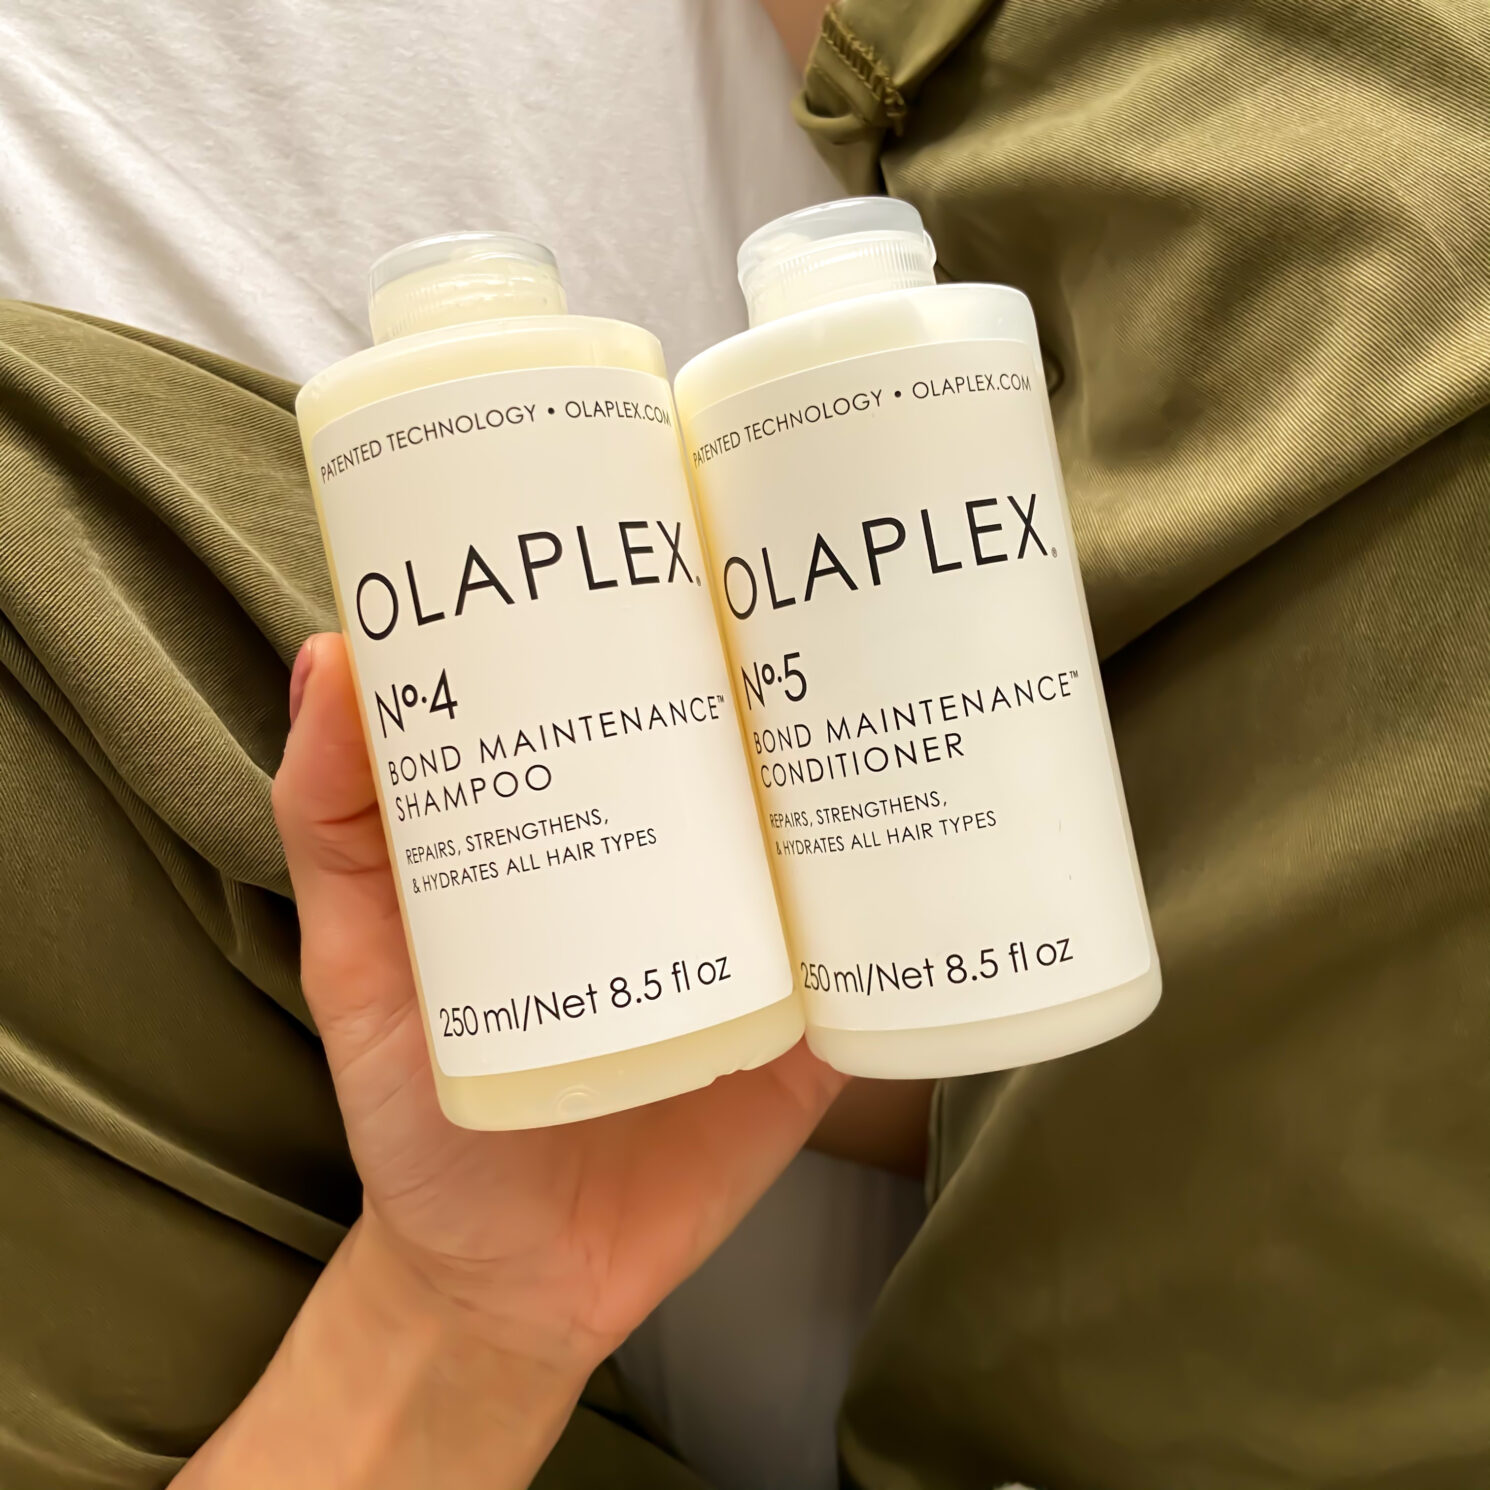 olaplaex no 4 and no 5 - first impressions